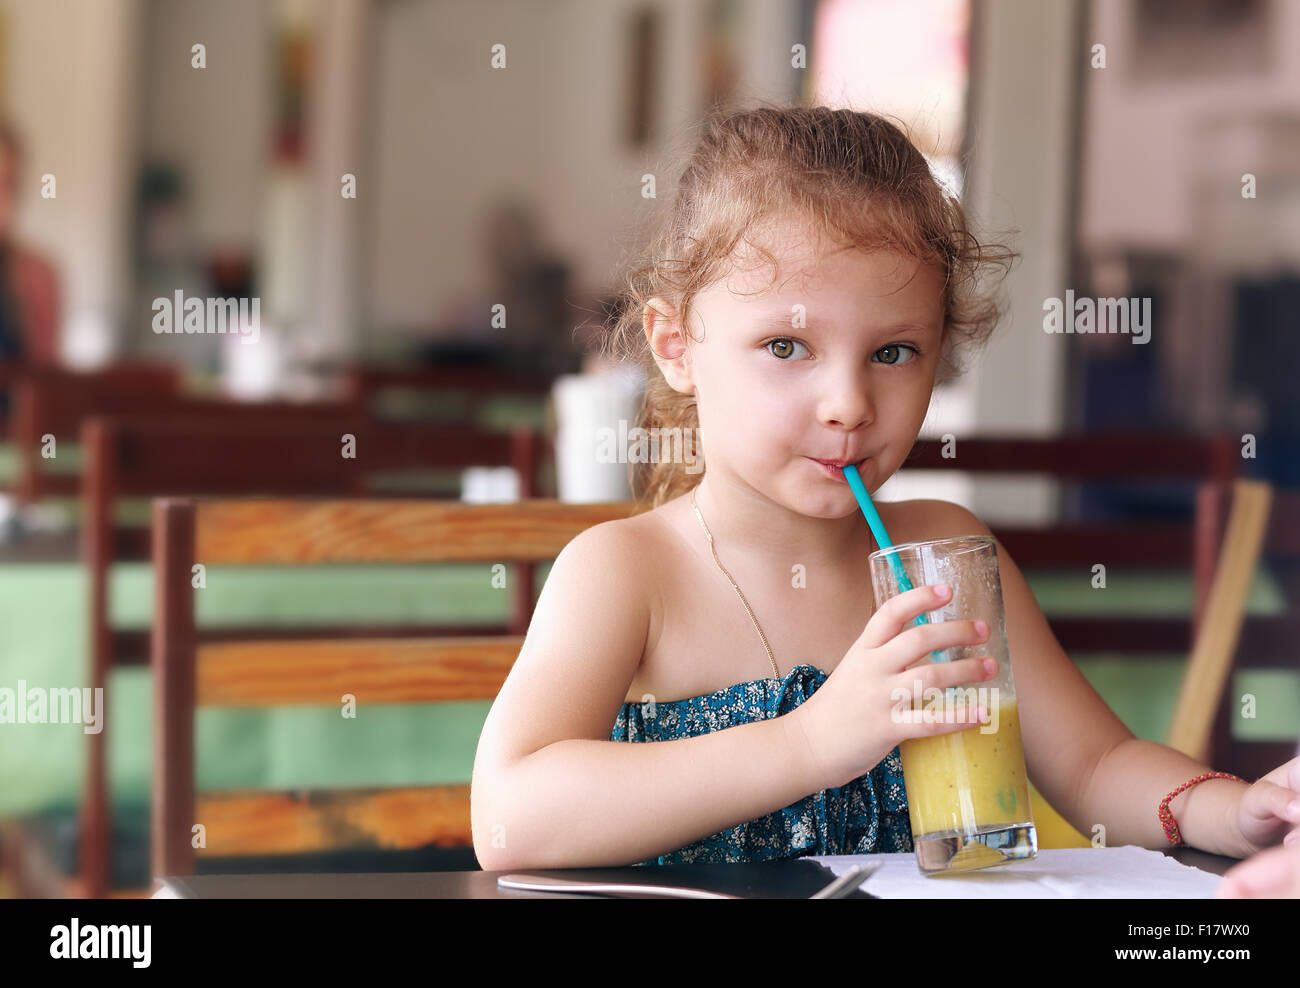 Cute small kid girl drinking juice in cafe with serious look - Stock Image